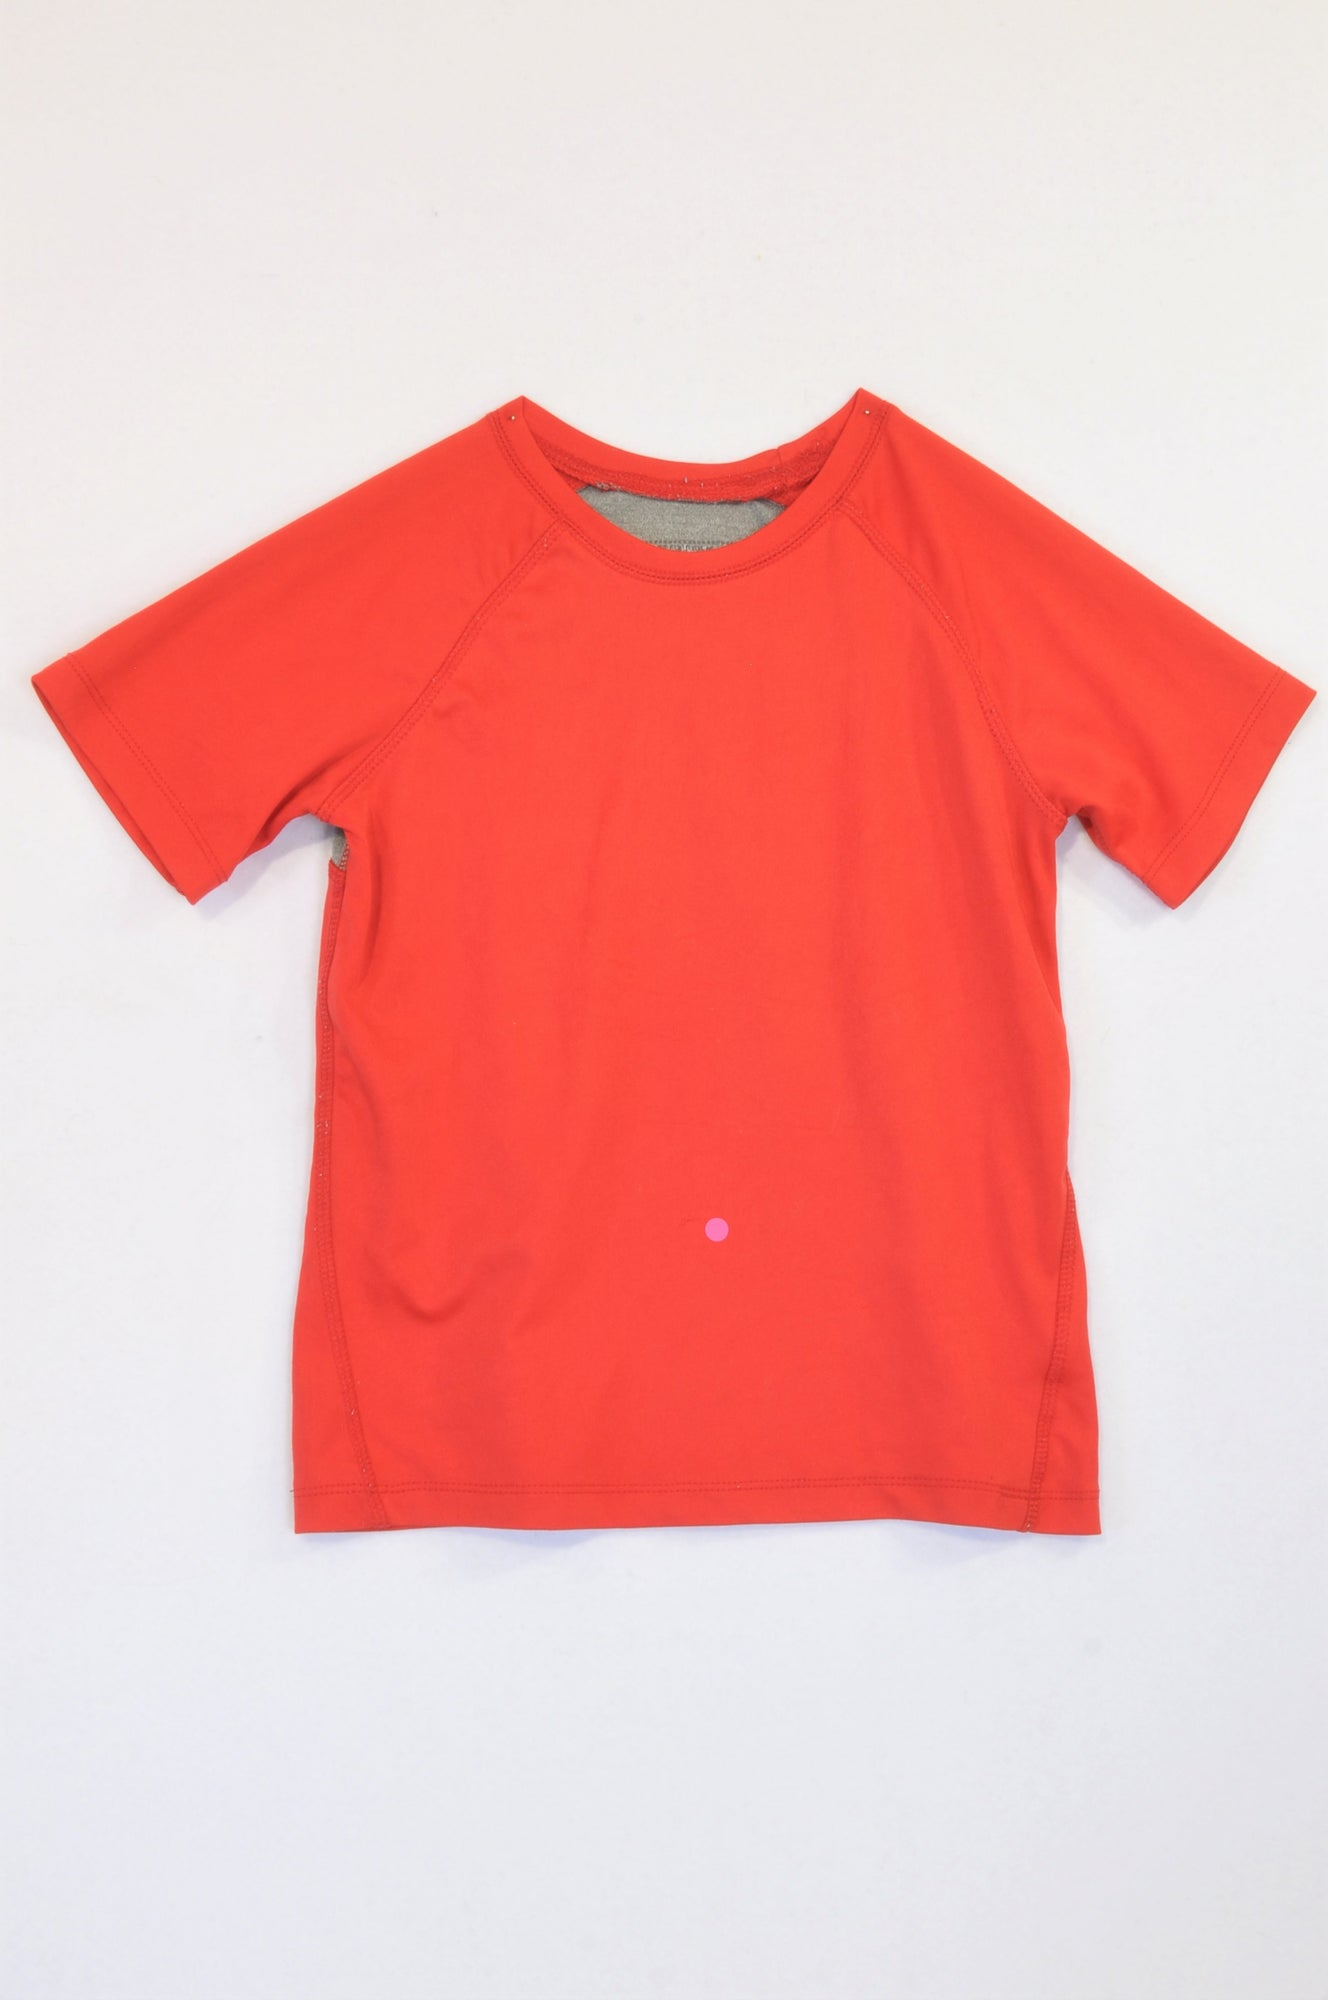 Pick 'n Pay Grey Back Panel Red Sports Top Boys 7-8 years